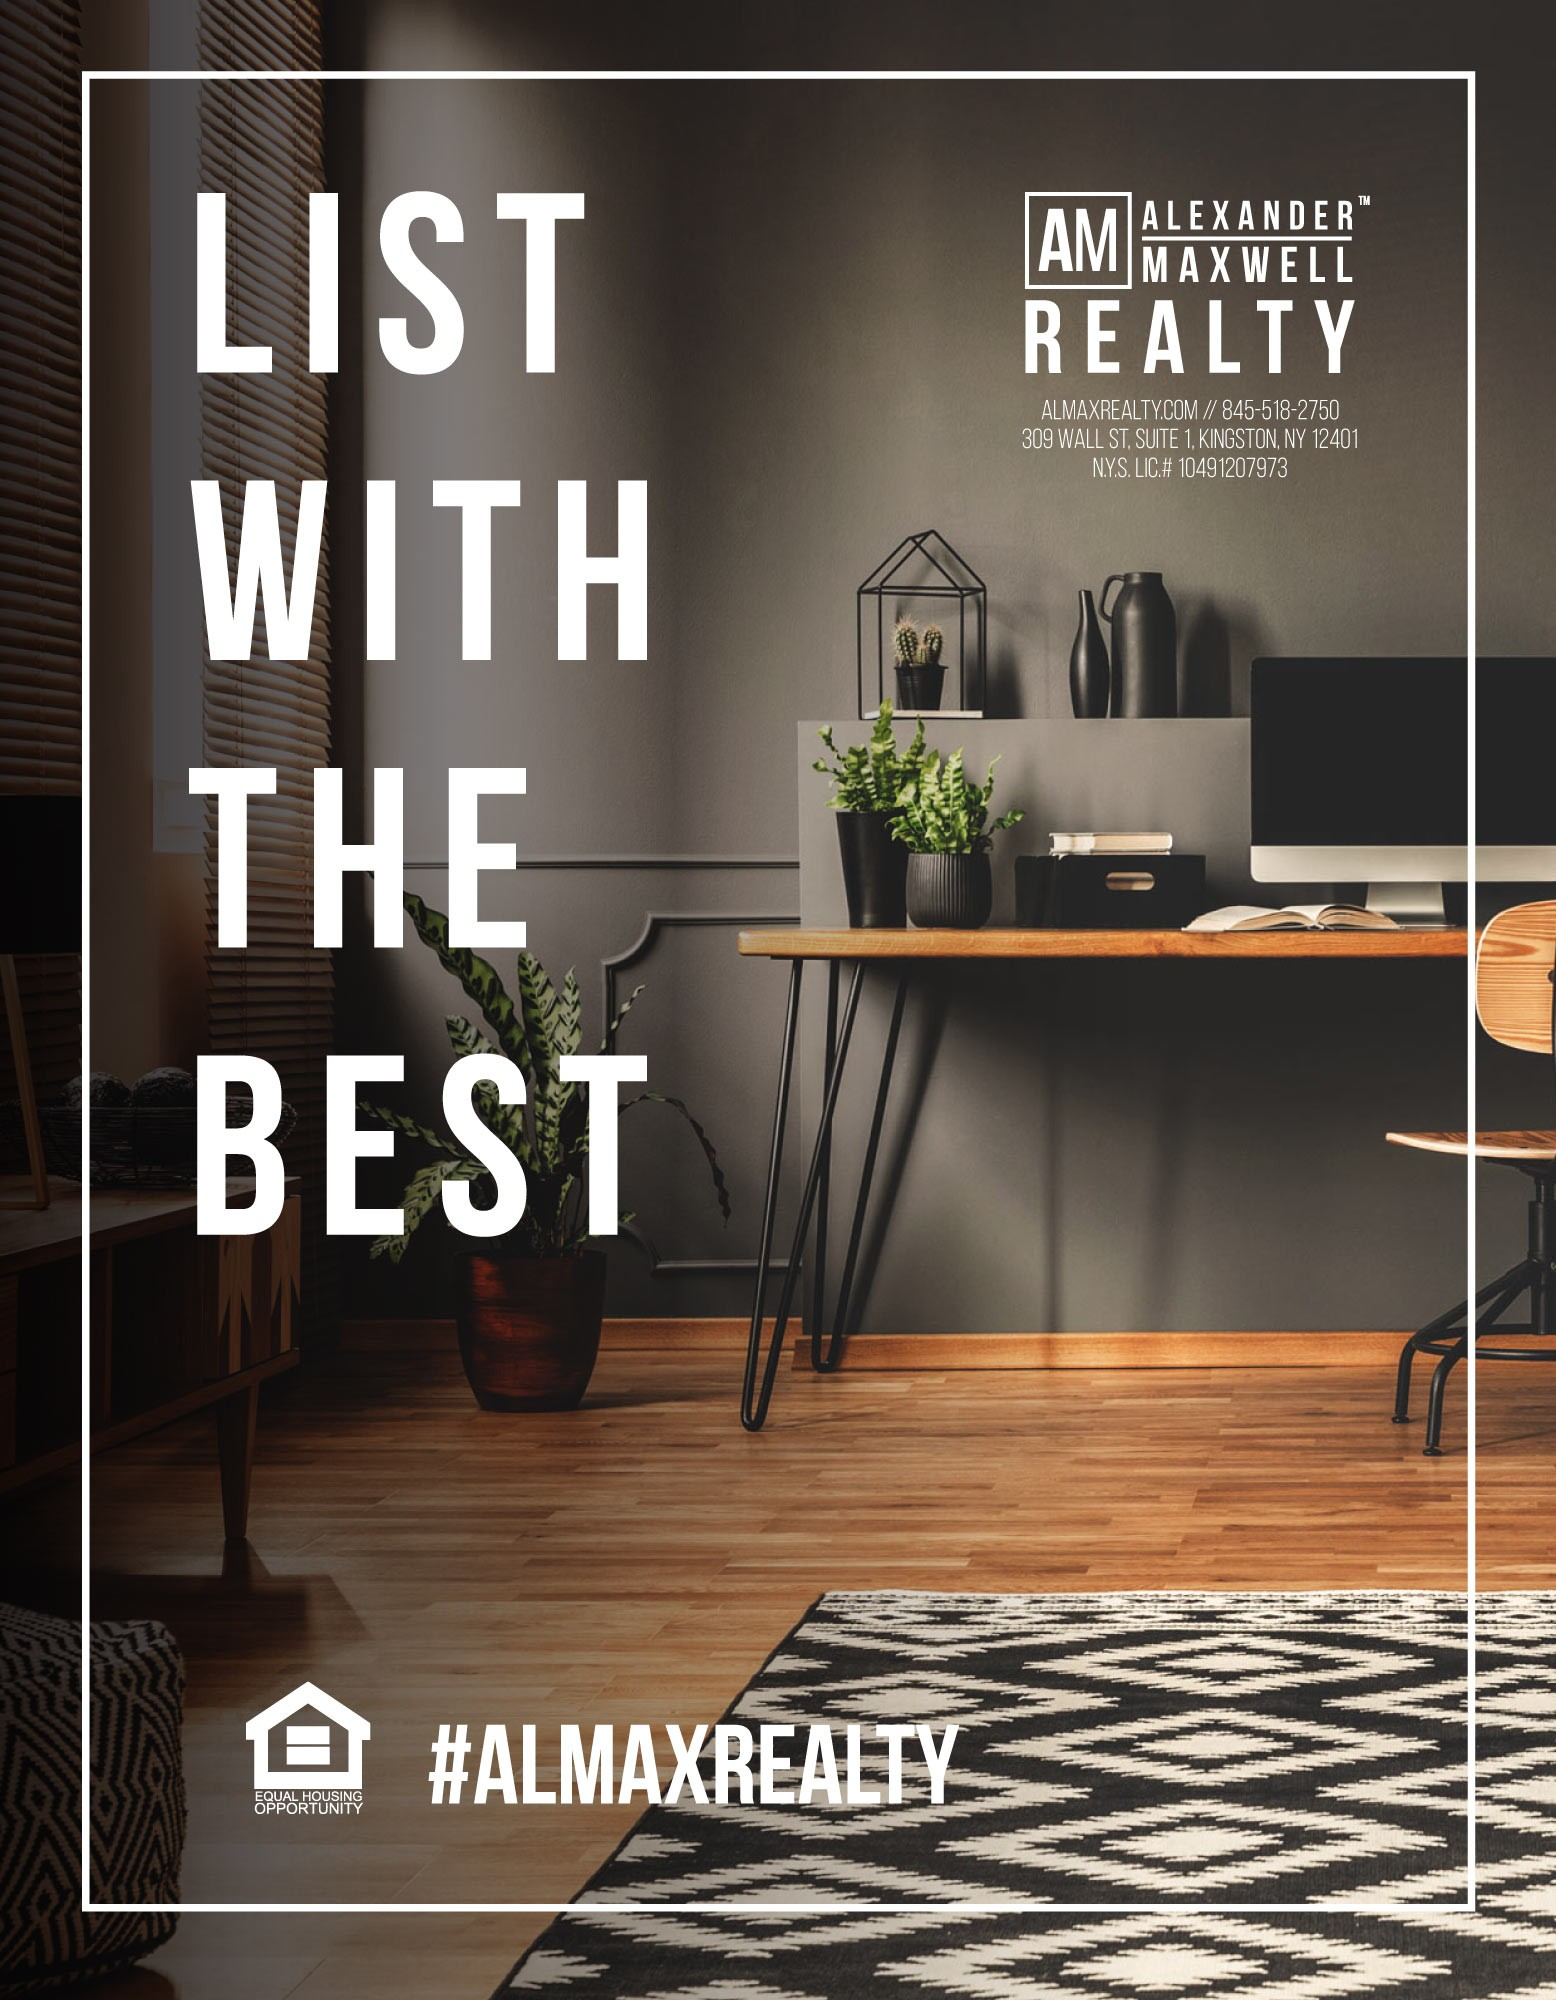 List with the Best - Alexander Maxwell Realty - Hudson Valley Real Estate